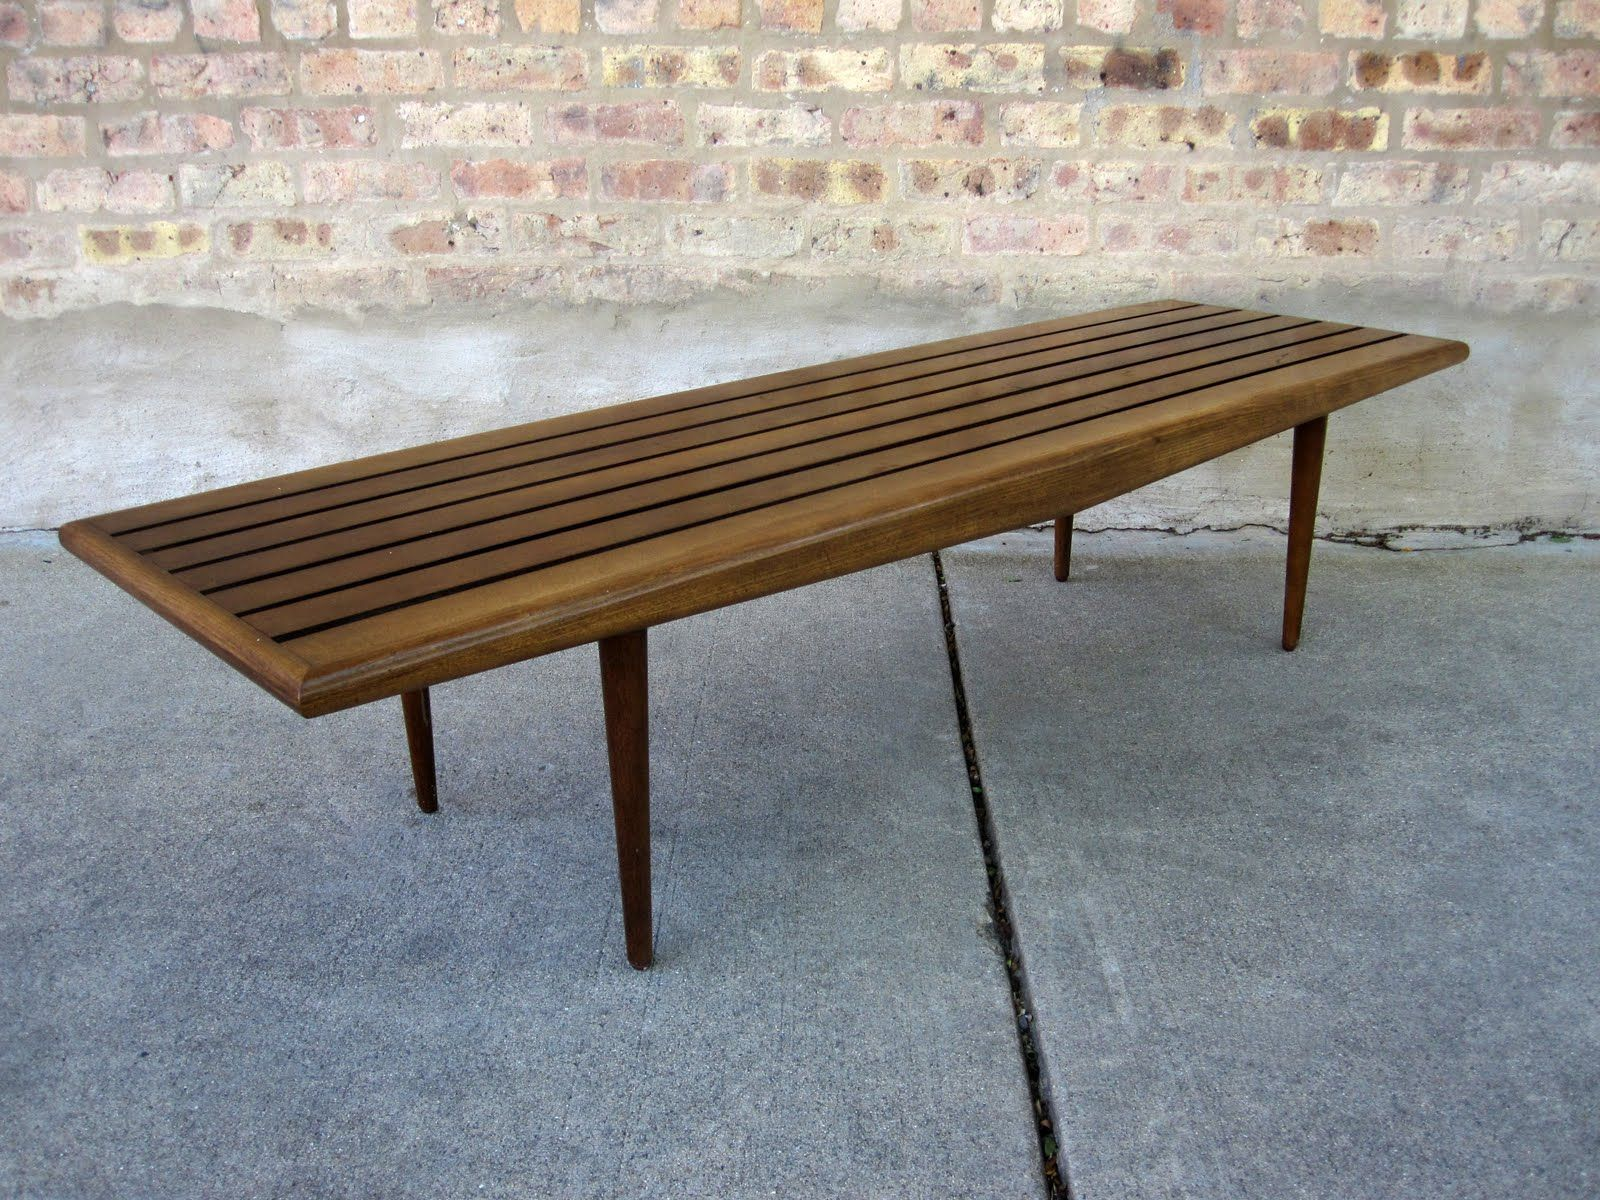 circa midcentury danish modern slat bench coffee table want